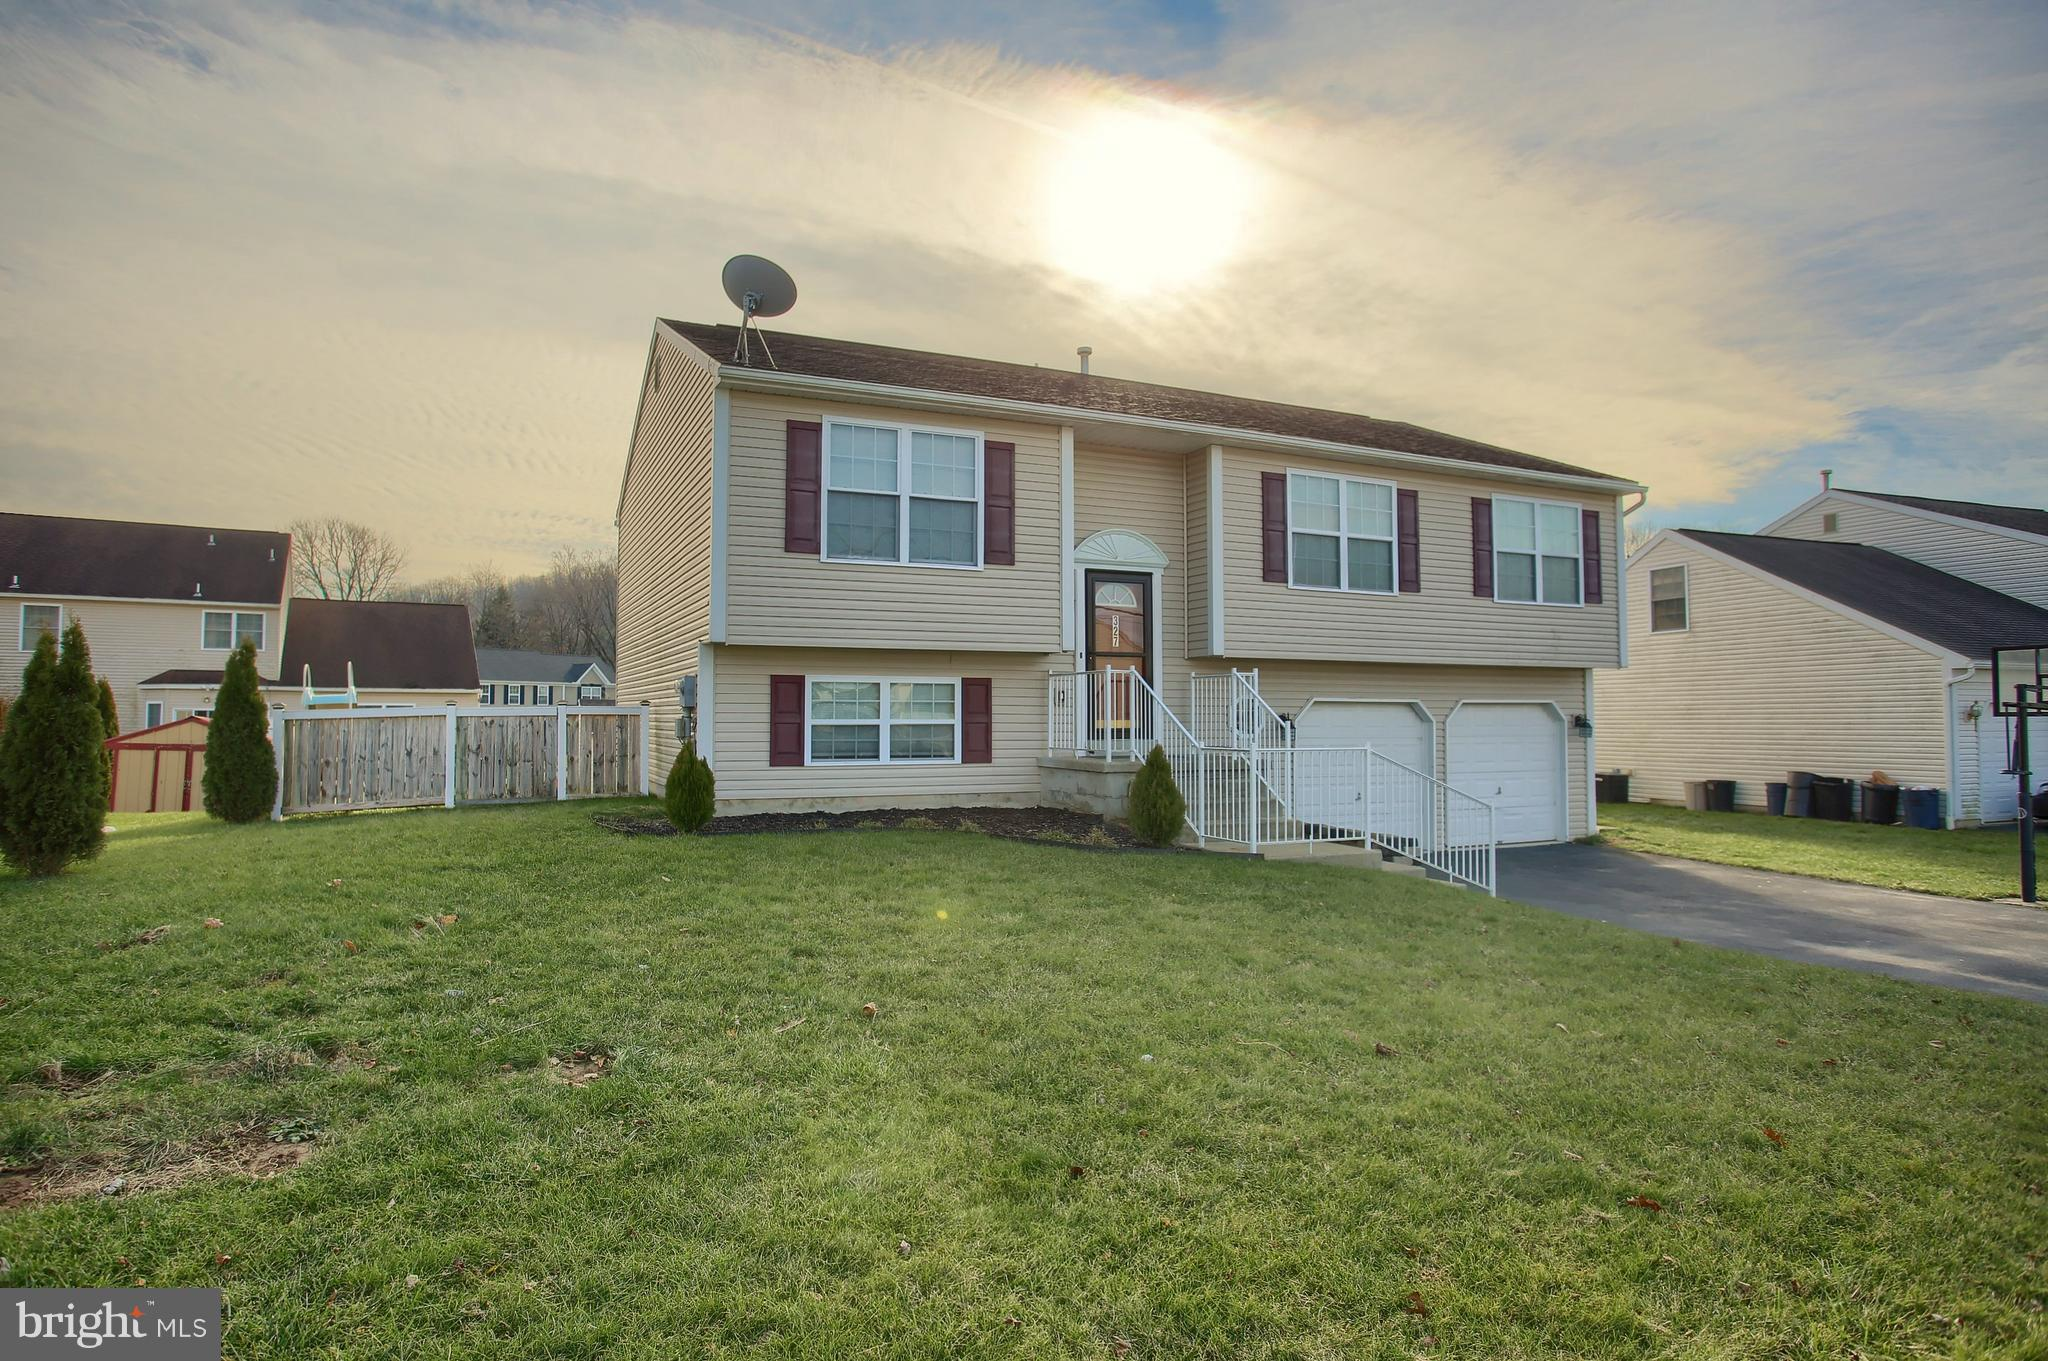 327 CRYSTAL ROCK ROAD, TEMPLE, PA 19560